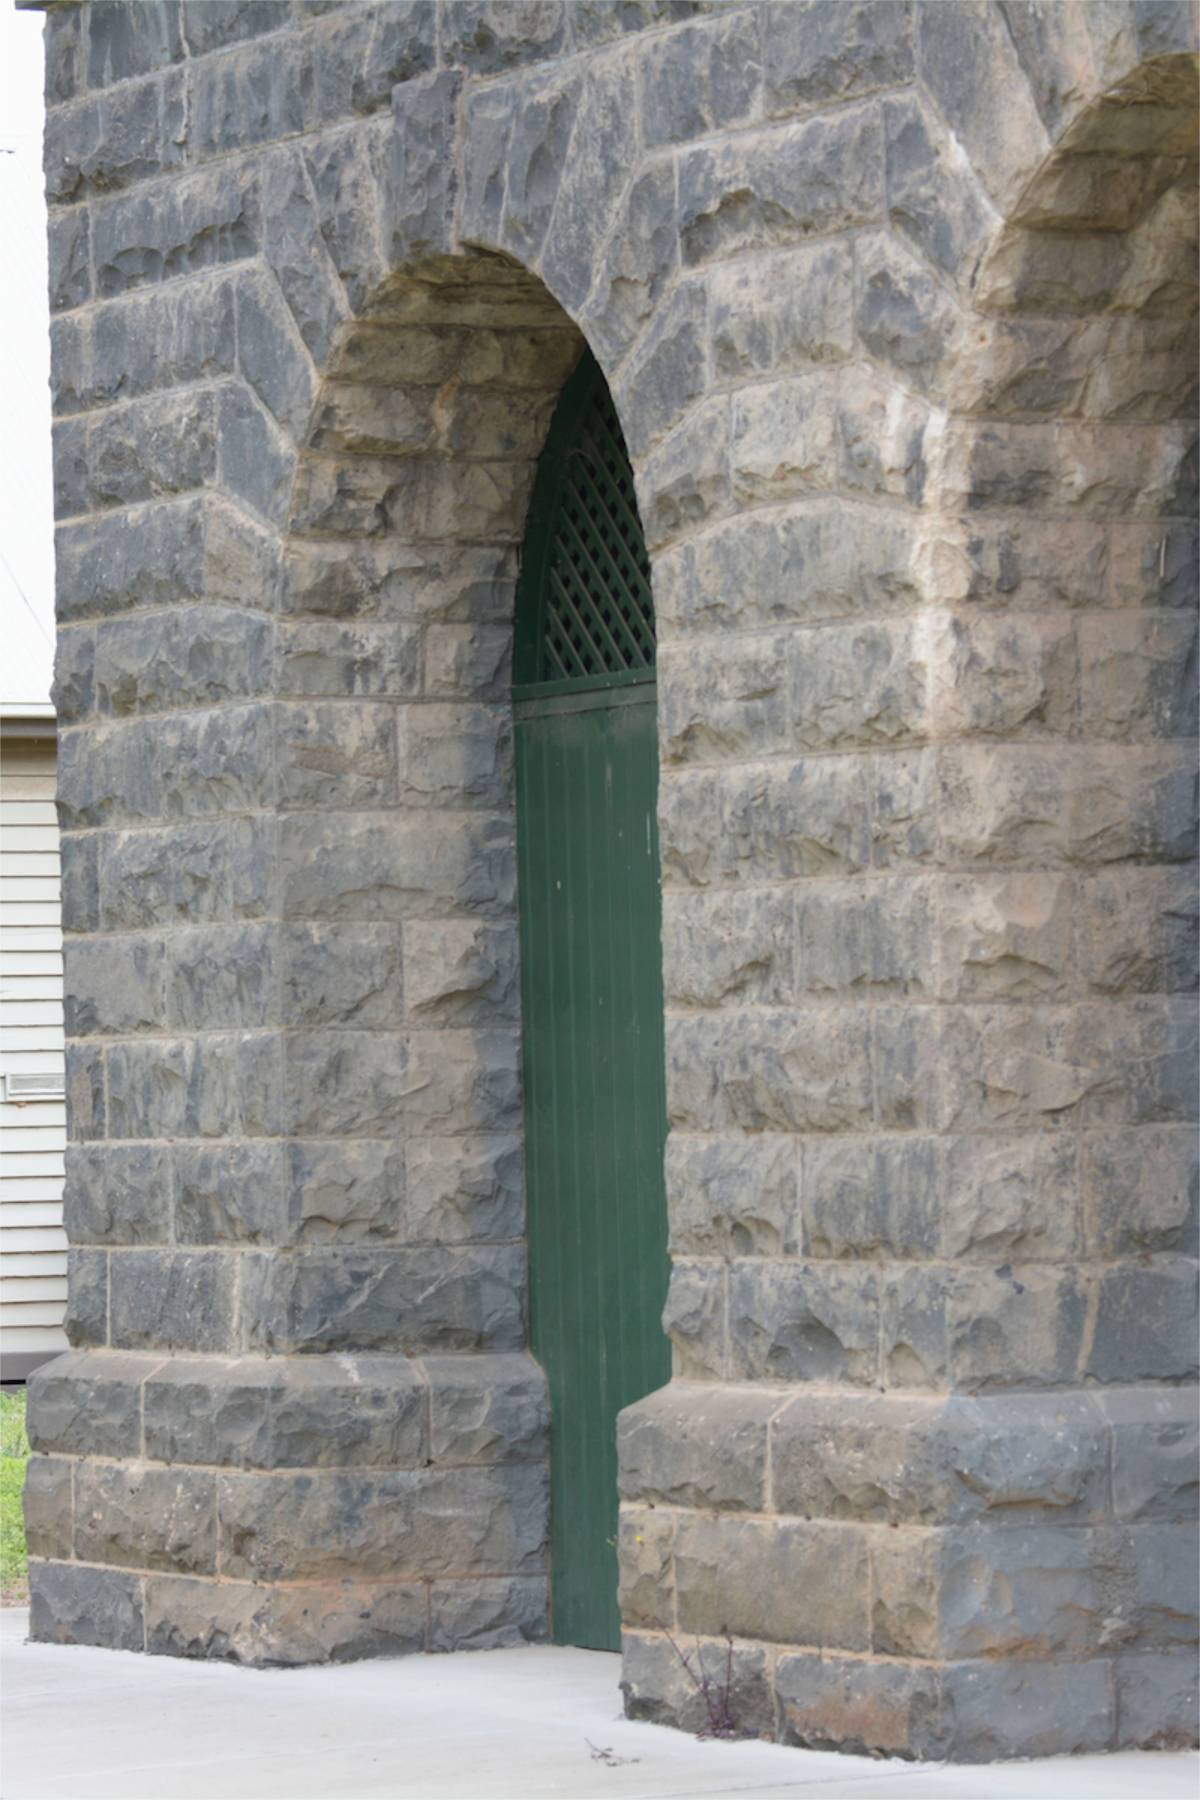 Detail of the support arches for the water tank.